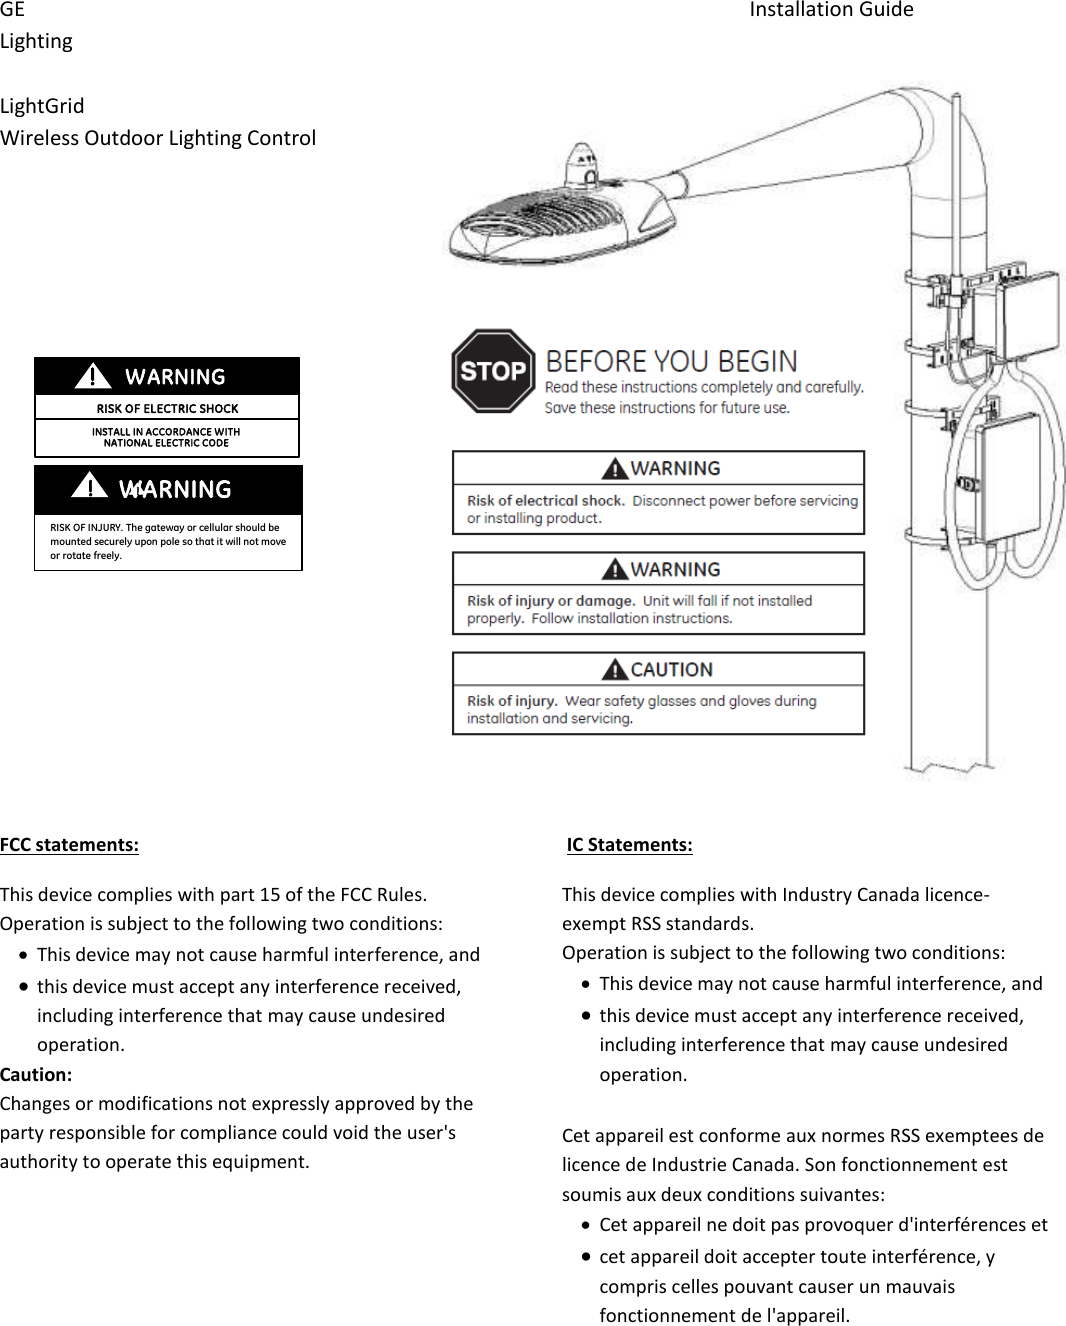 The Lighting Controller Manual Dmx 512 Rgb Led Light Filebasic Wiring Diagrams Of Dimmersjpg Wikimedia Commons Ge 90003 Lightgrid Wireless Outdoor Control Node User